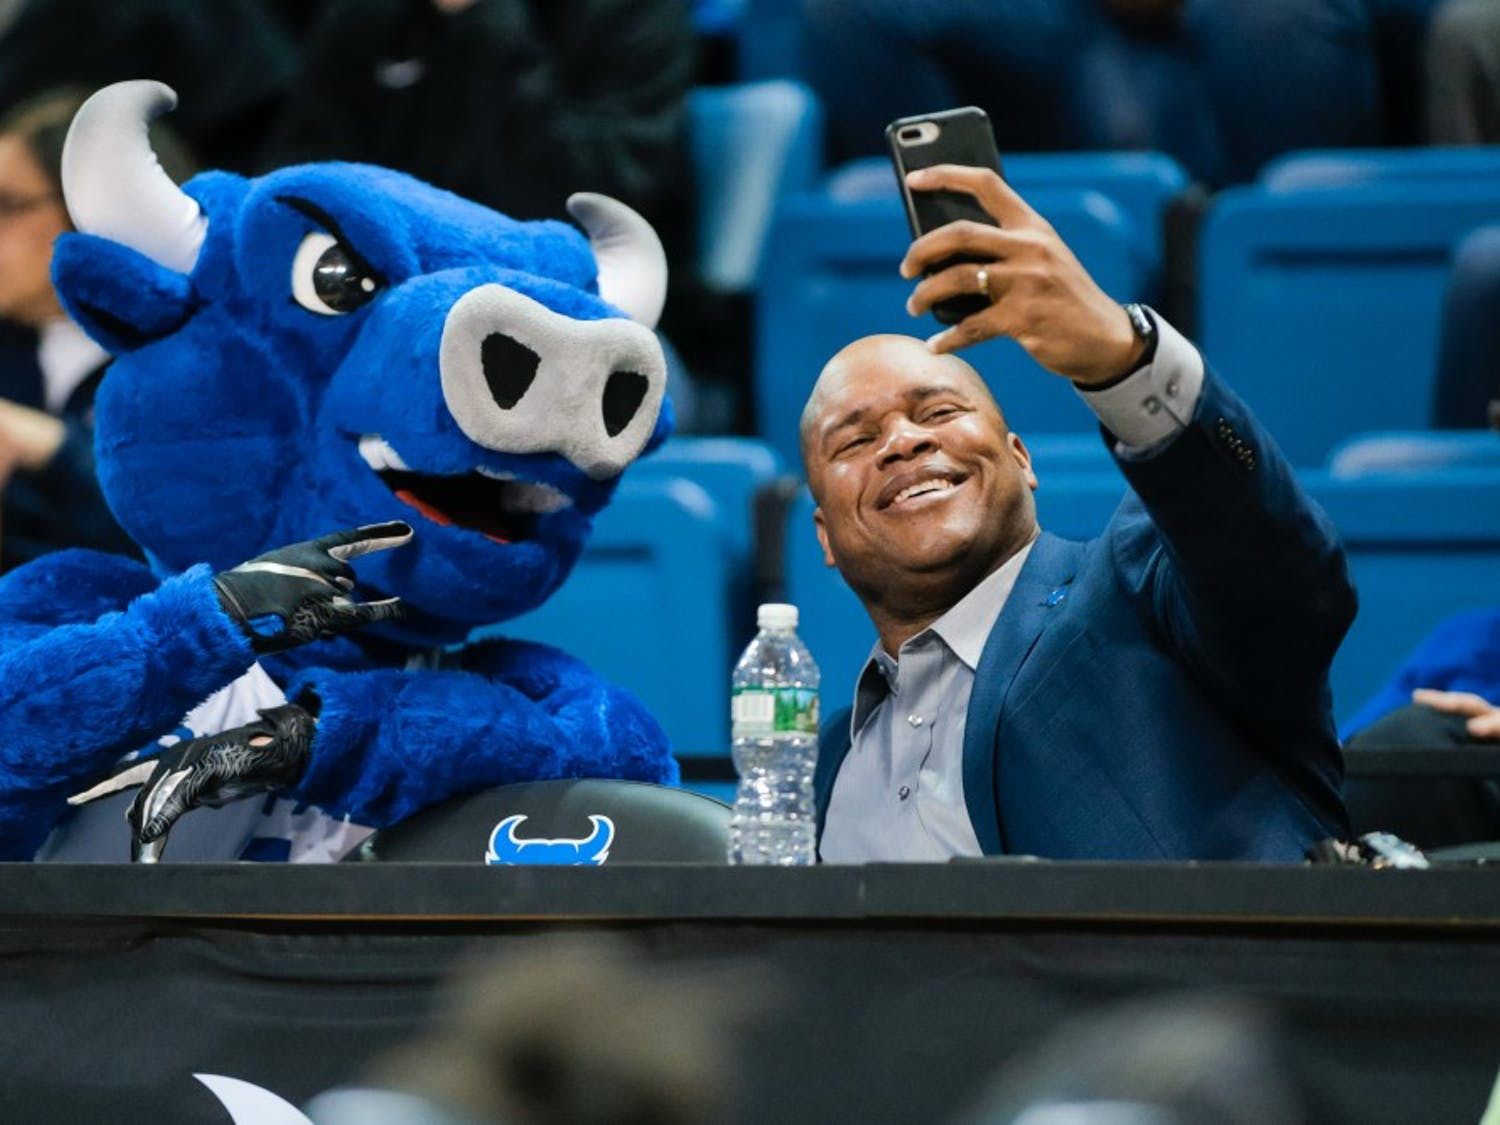 Athletic Director Mark Alnutt takes a selfie with UB's mascot Victor E. Bull at a basketball game. Alnutt hopes to continue the success of UB Athletics he inherited when taking the job.